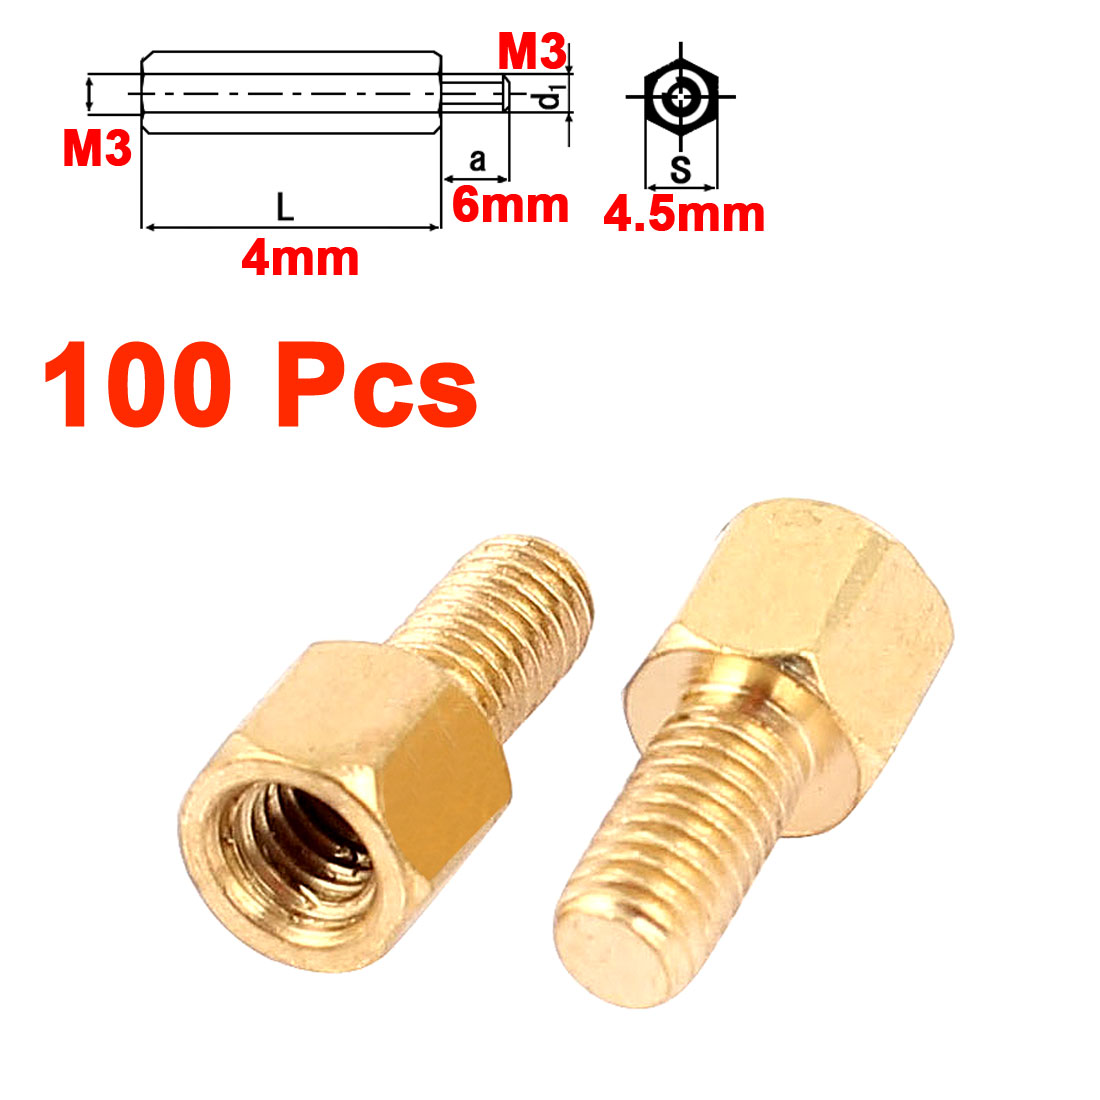 100Pcs M3 Male to Female 4mm+6mm Screw Threaded Brass Hex Standoff Spacer for PCB Motherboard